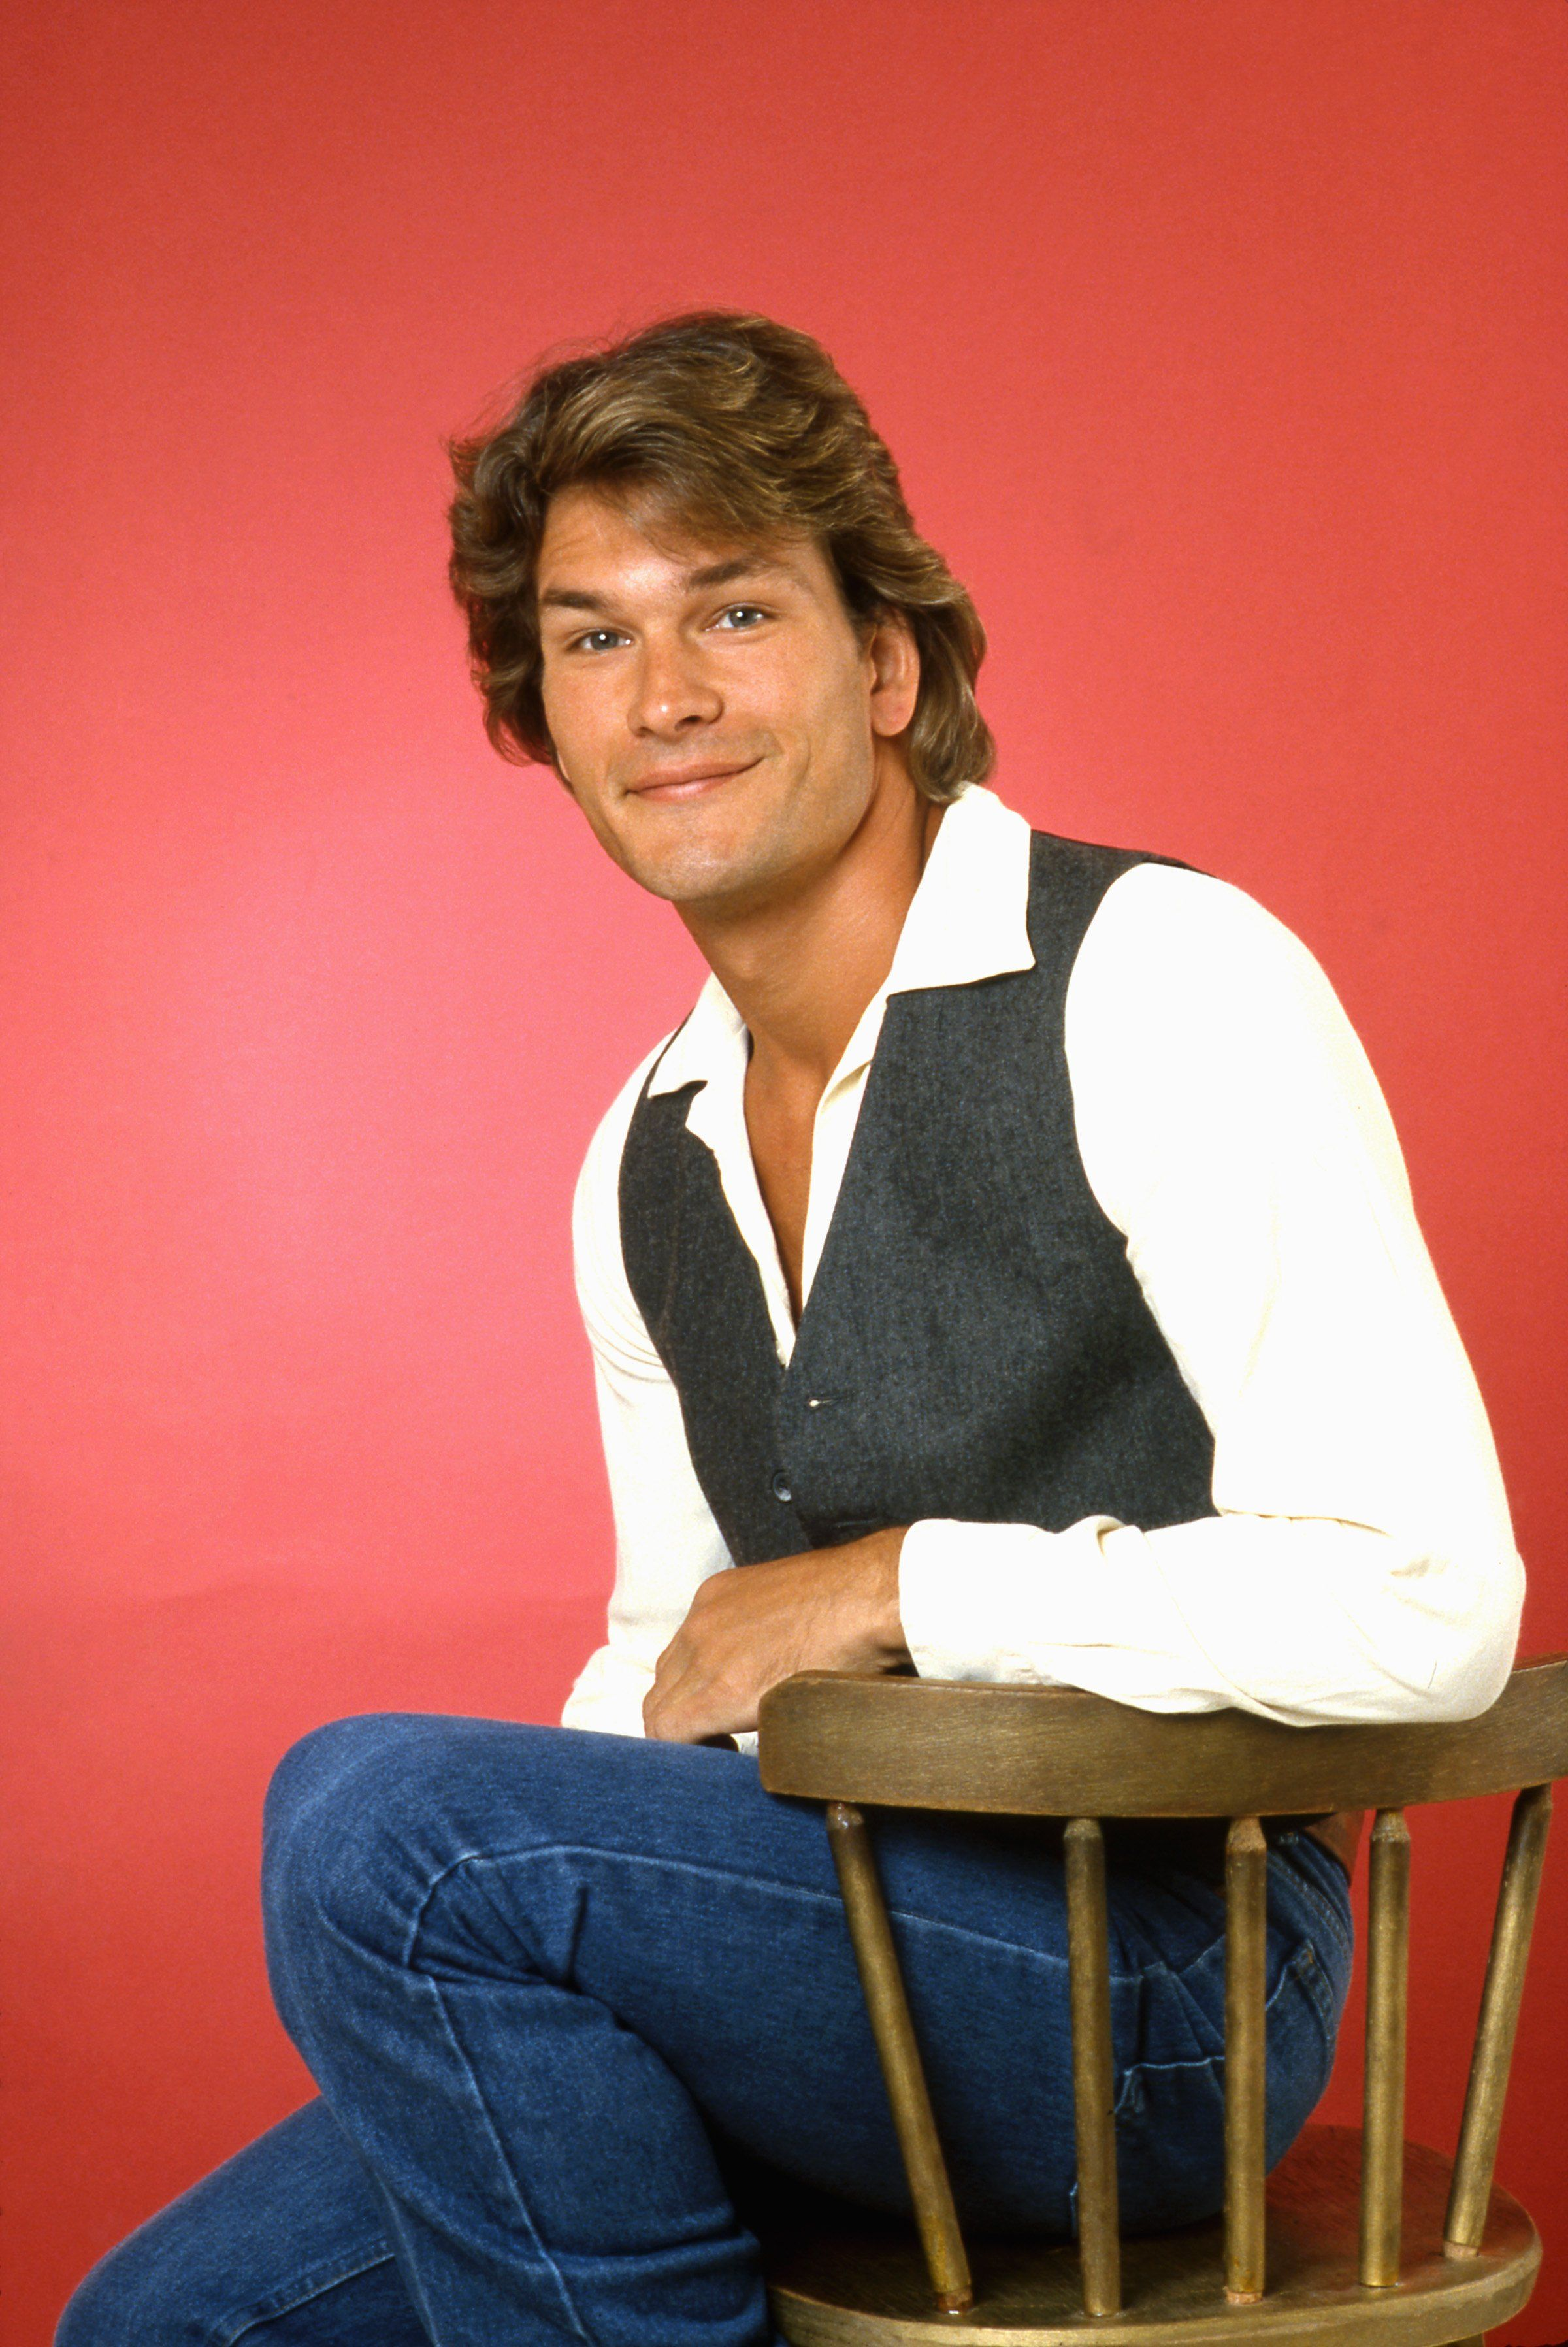 Images of Young Patrick Swayze